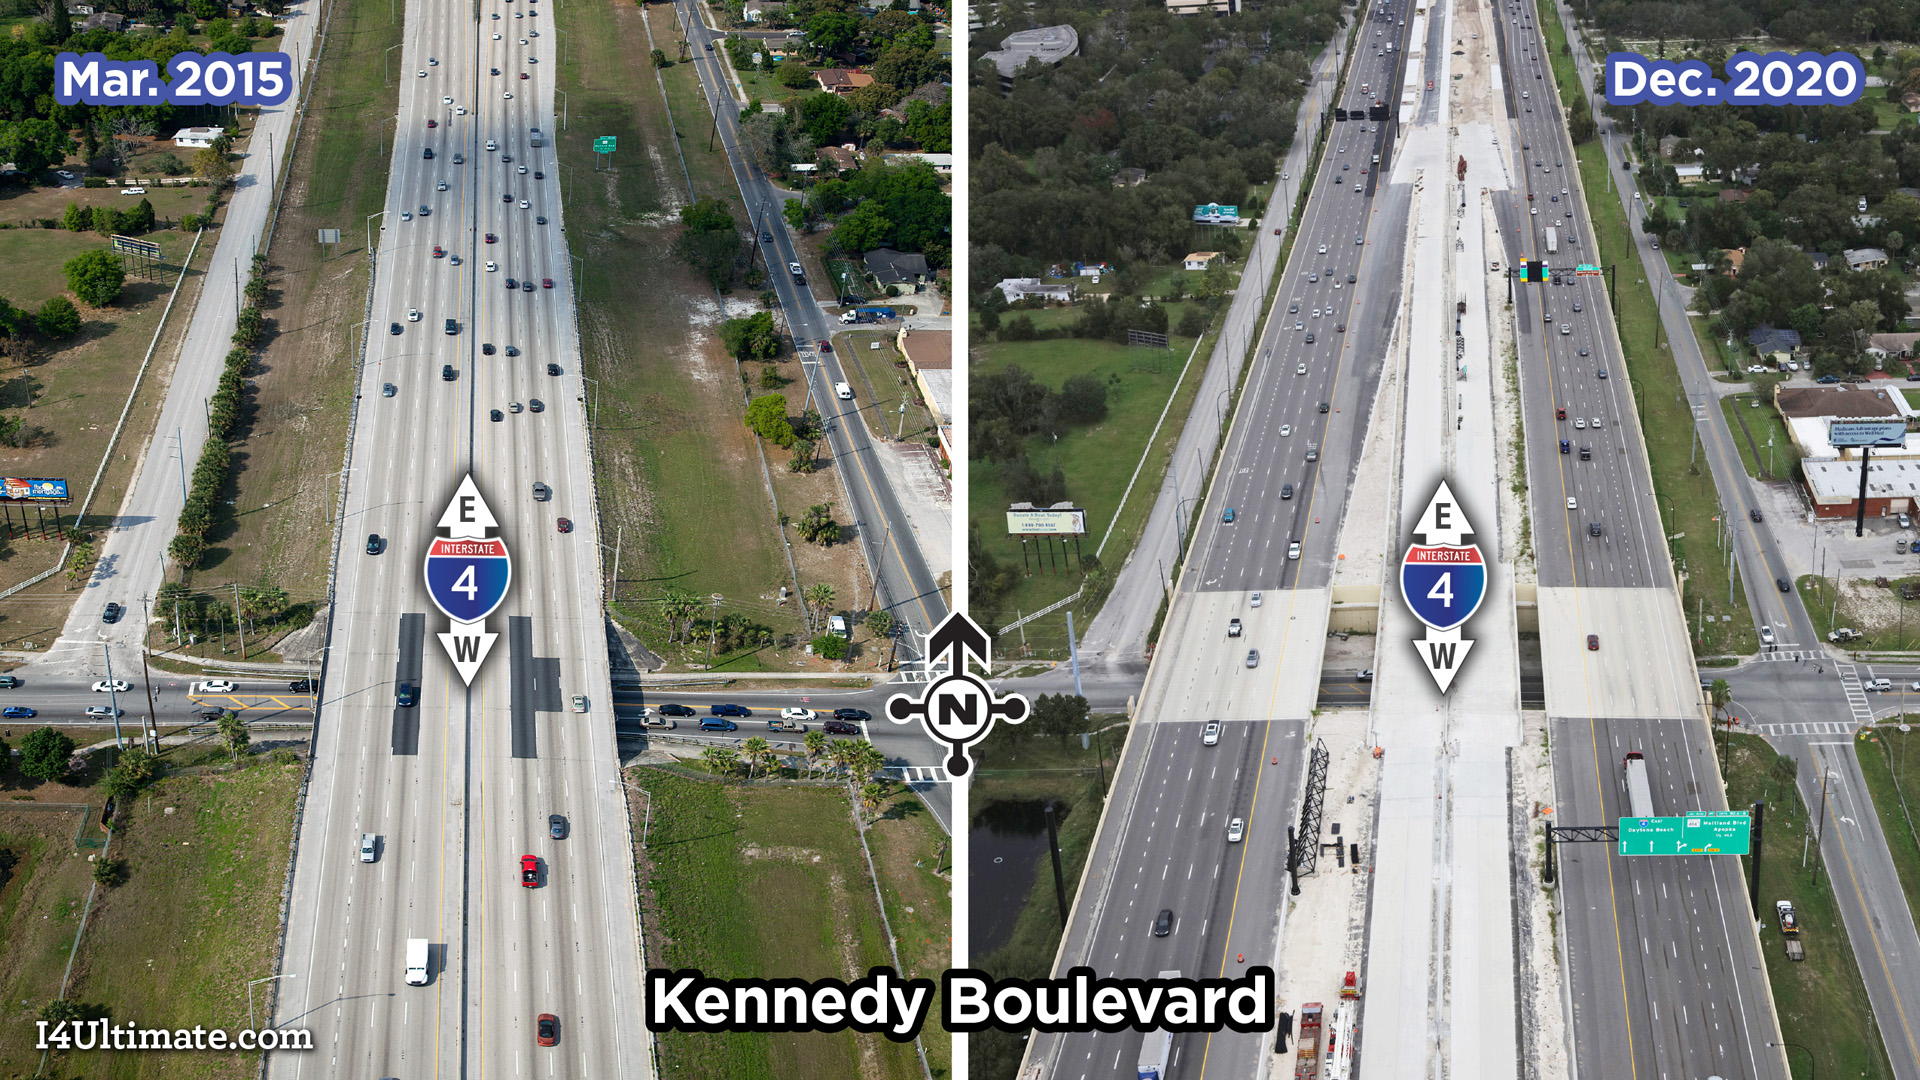 4738-I4Ultimate-GUL-campaign-images-20210212-18-Kennedy-Boulevard